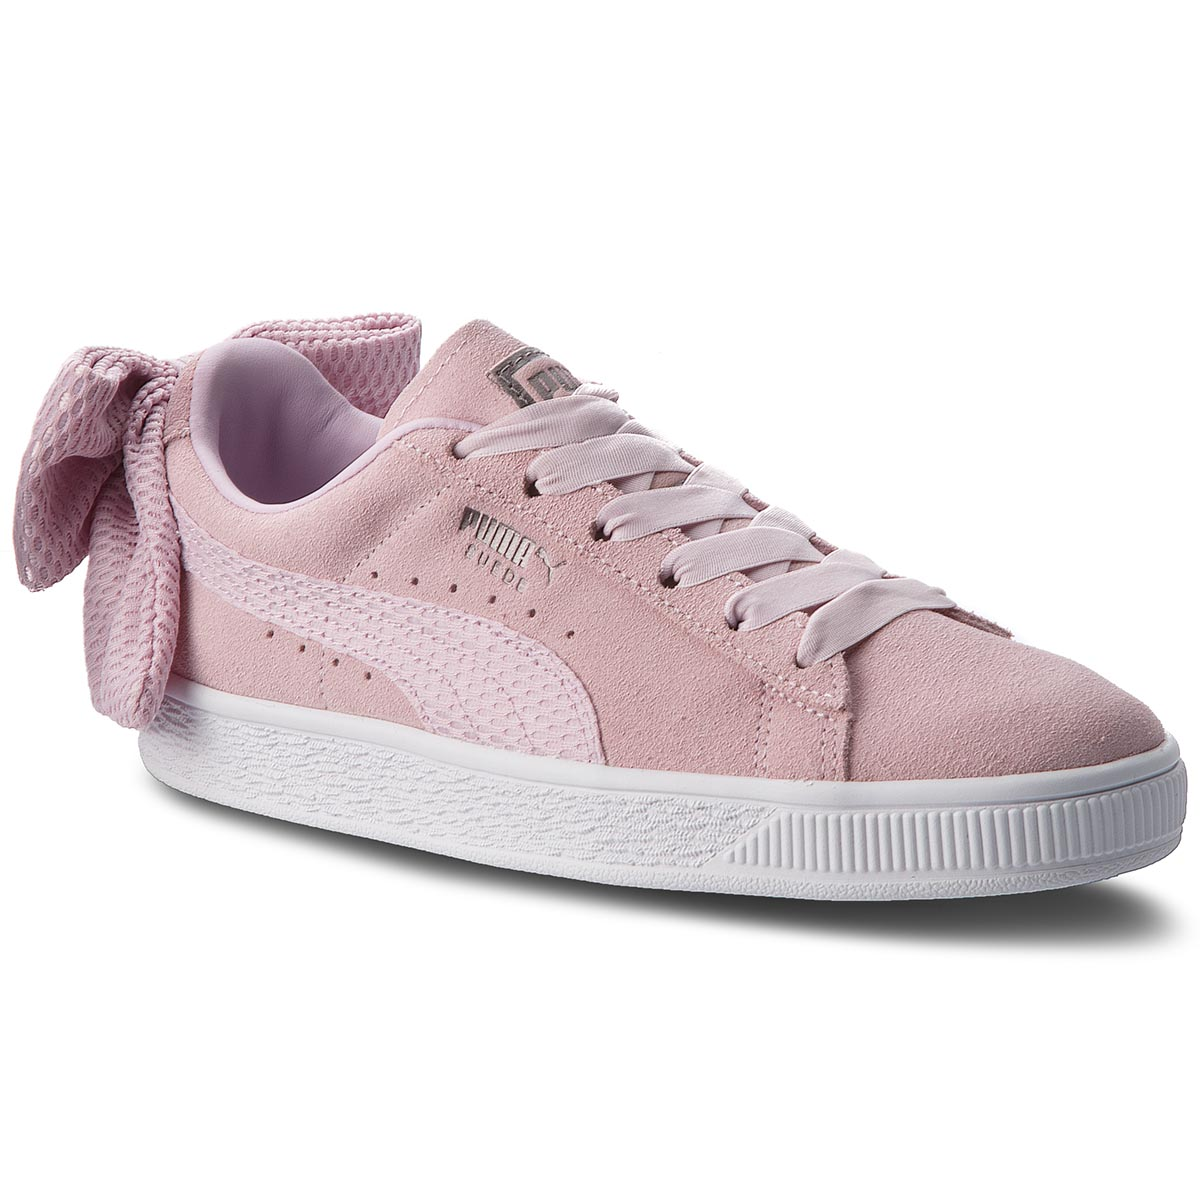 ab7ac586d Sneakers PUMA Suede Bow Uprising Wn's 367455 03 Winsome Orchid/Puma White